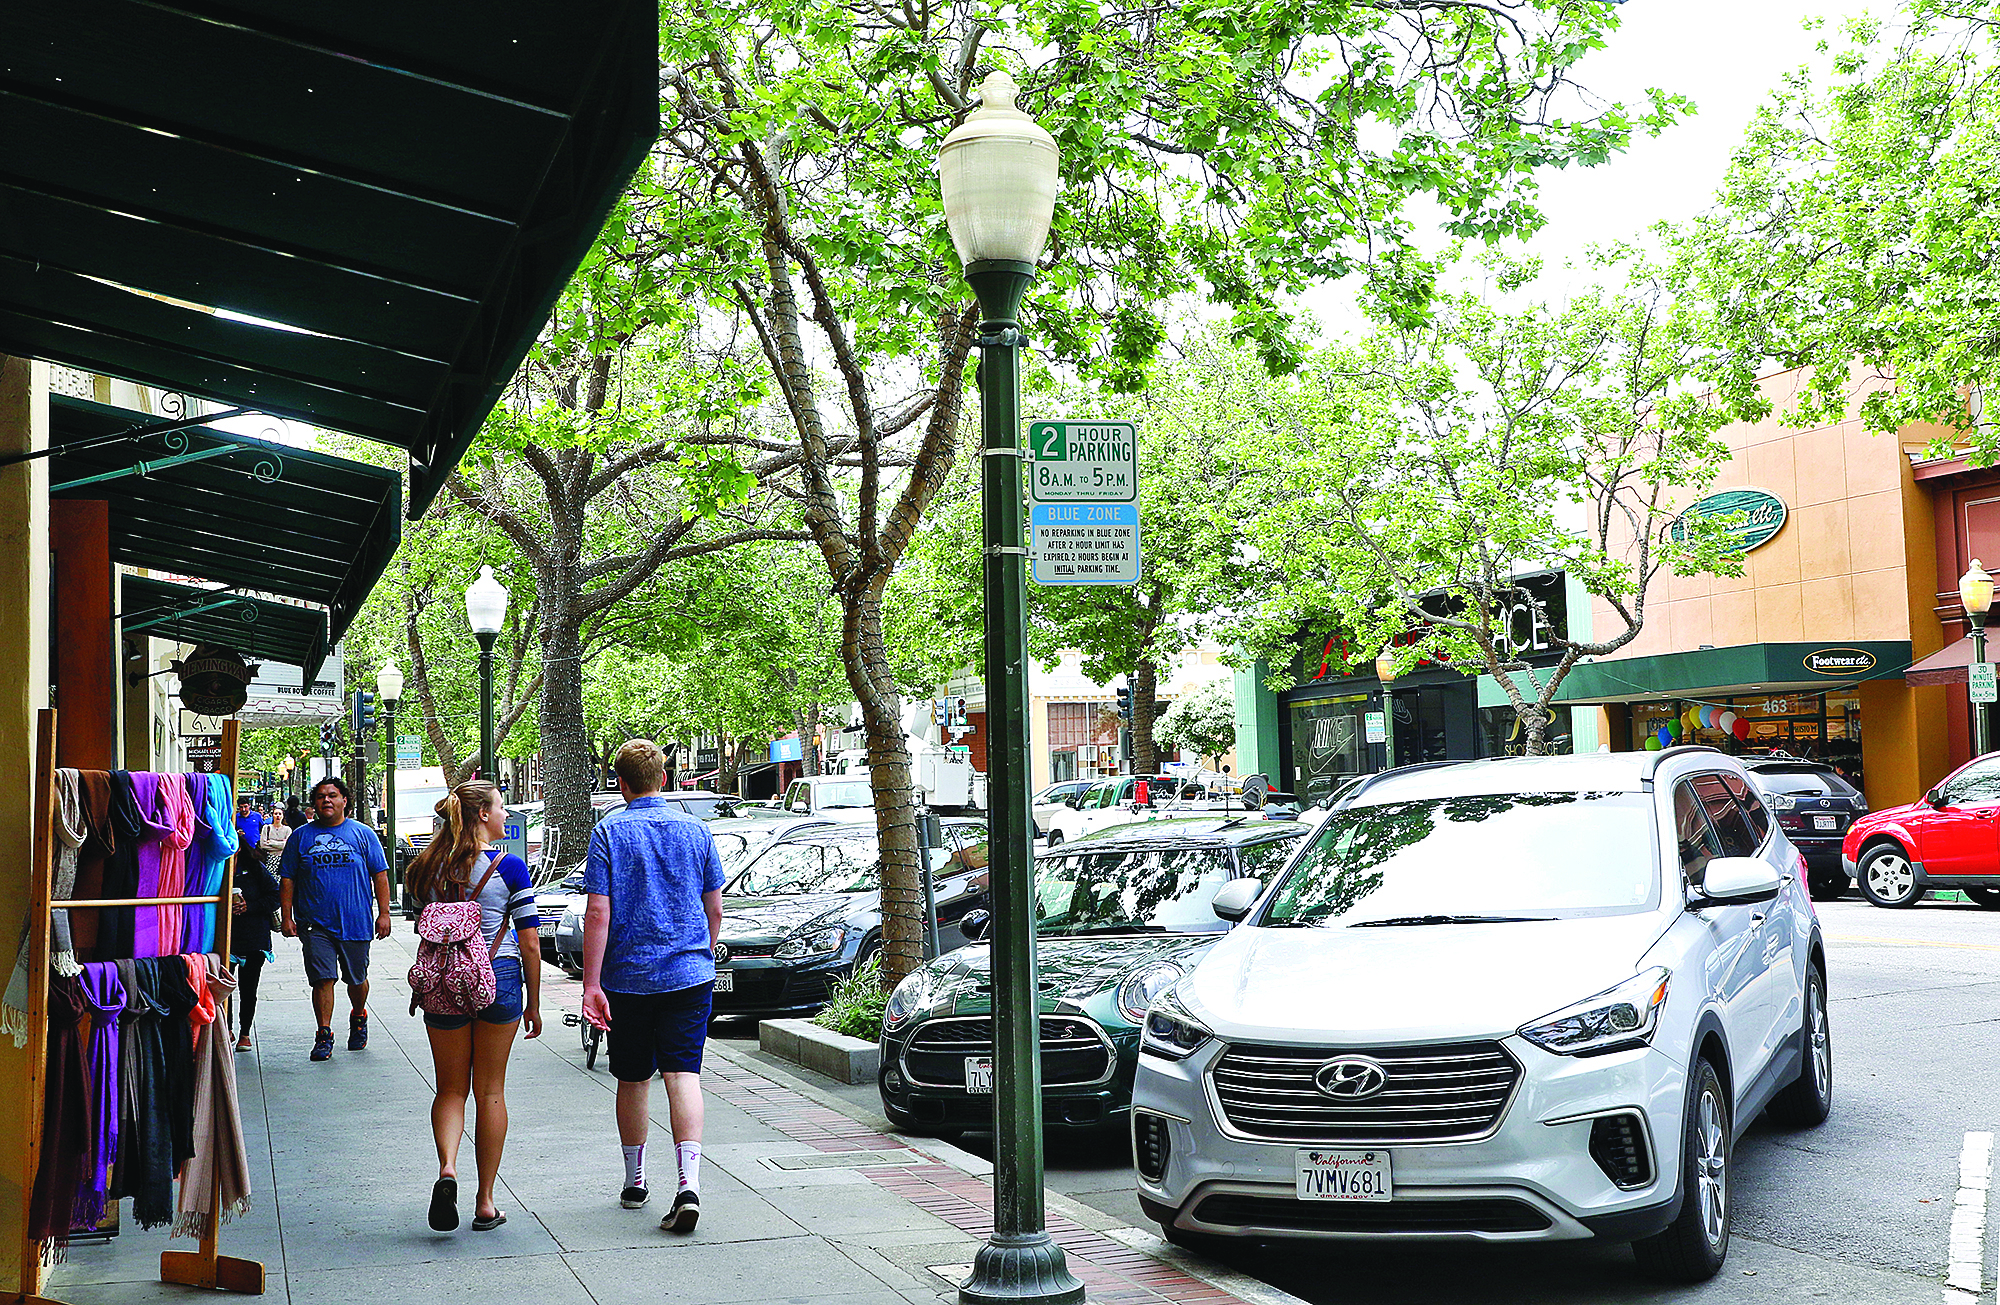 Cars parked in the blue zone along University Avenue in downtown Palo Alto. Photo by Veronica Weber.